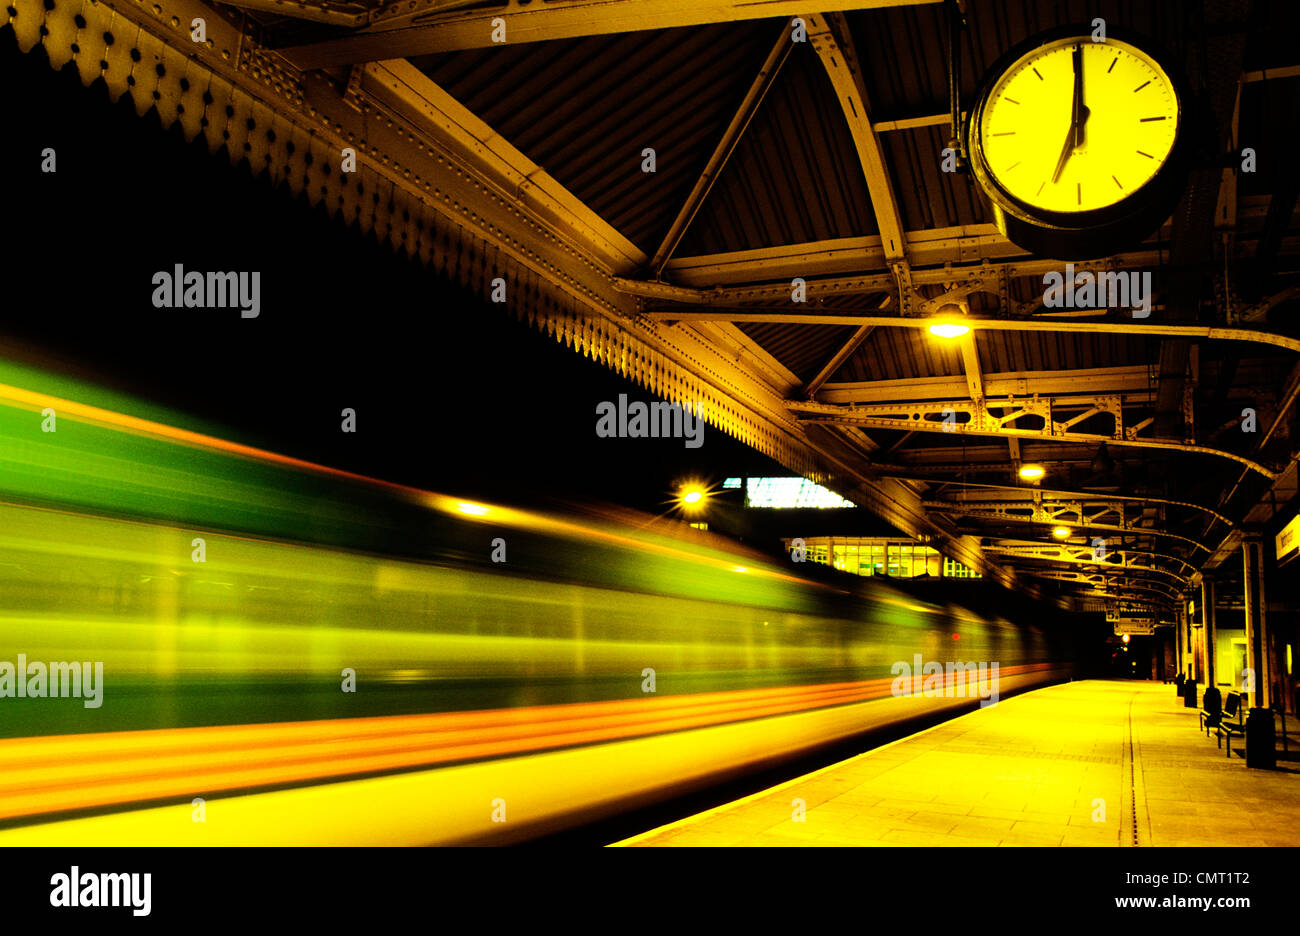 Clock showing time of departing train from Nottingham station England UK - Stock Image